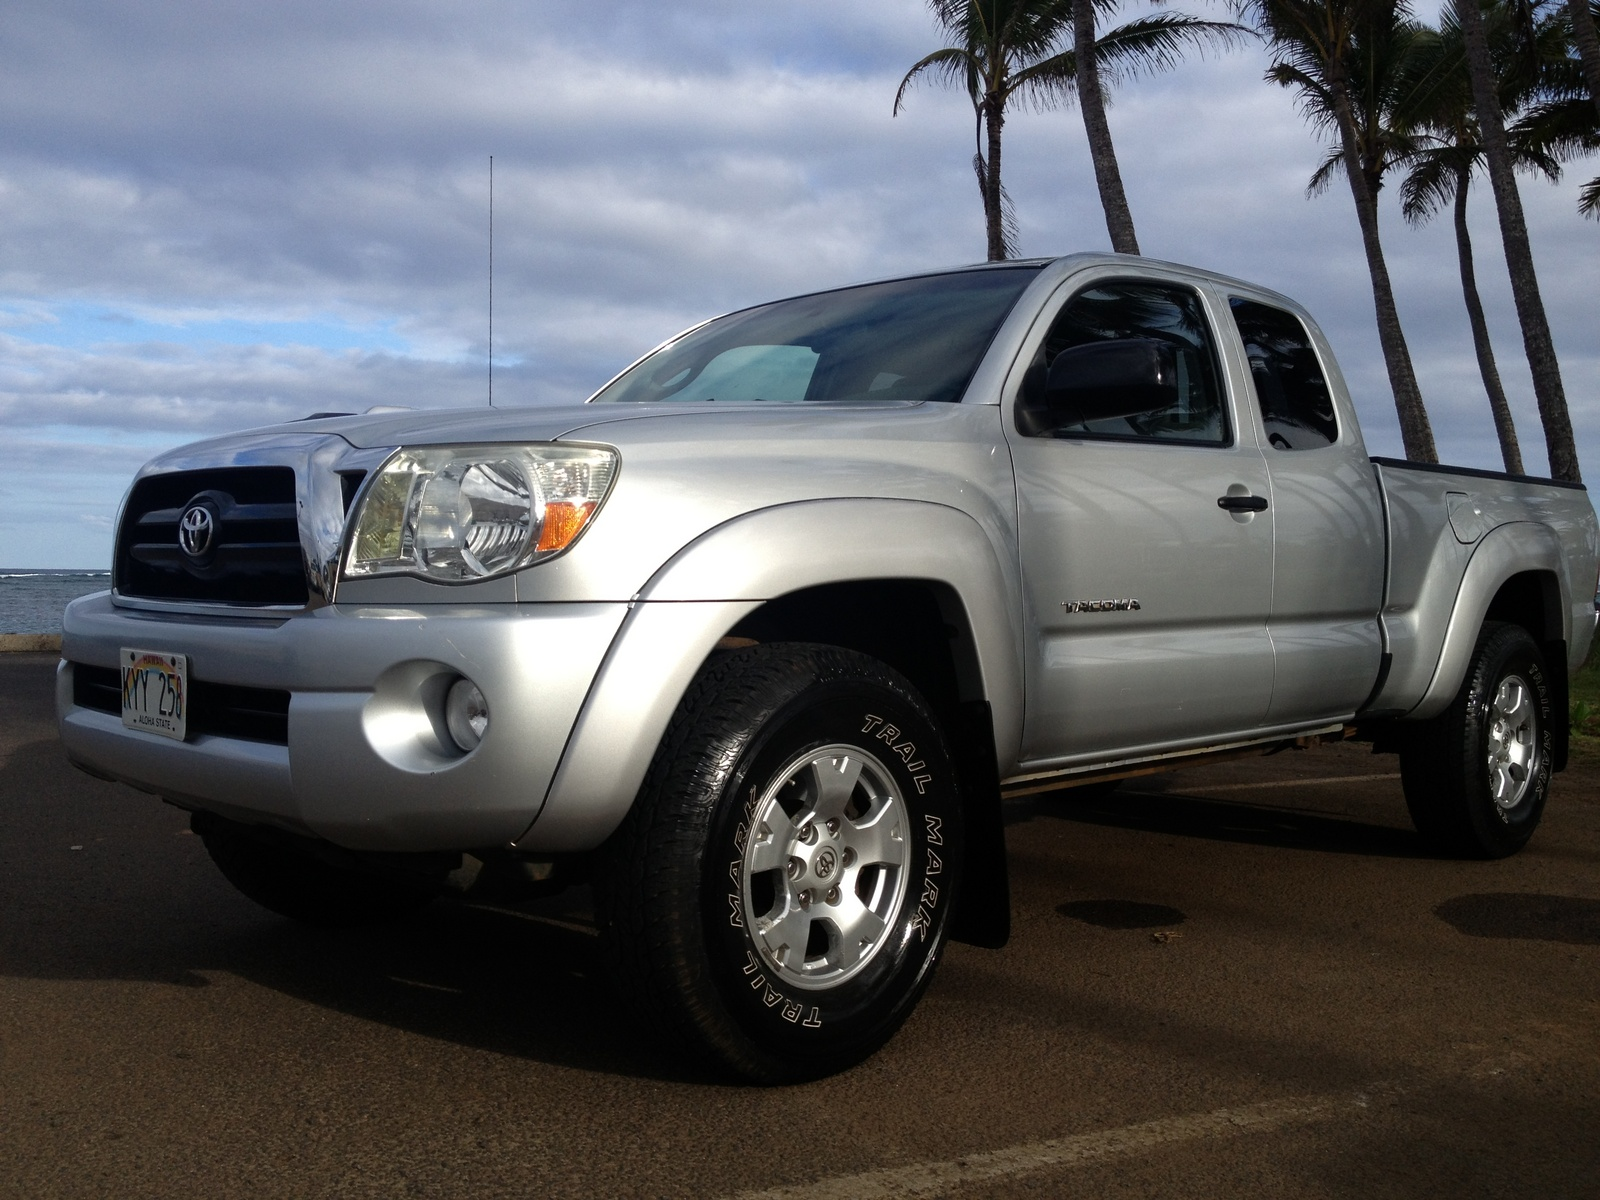 2006 Toyota Tacoma - Exterior Pictures